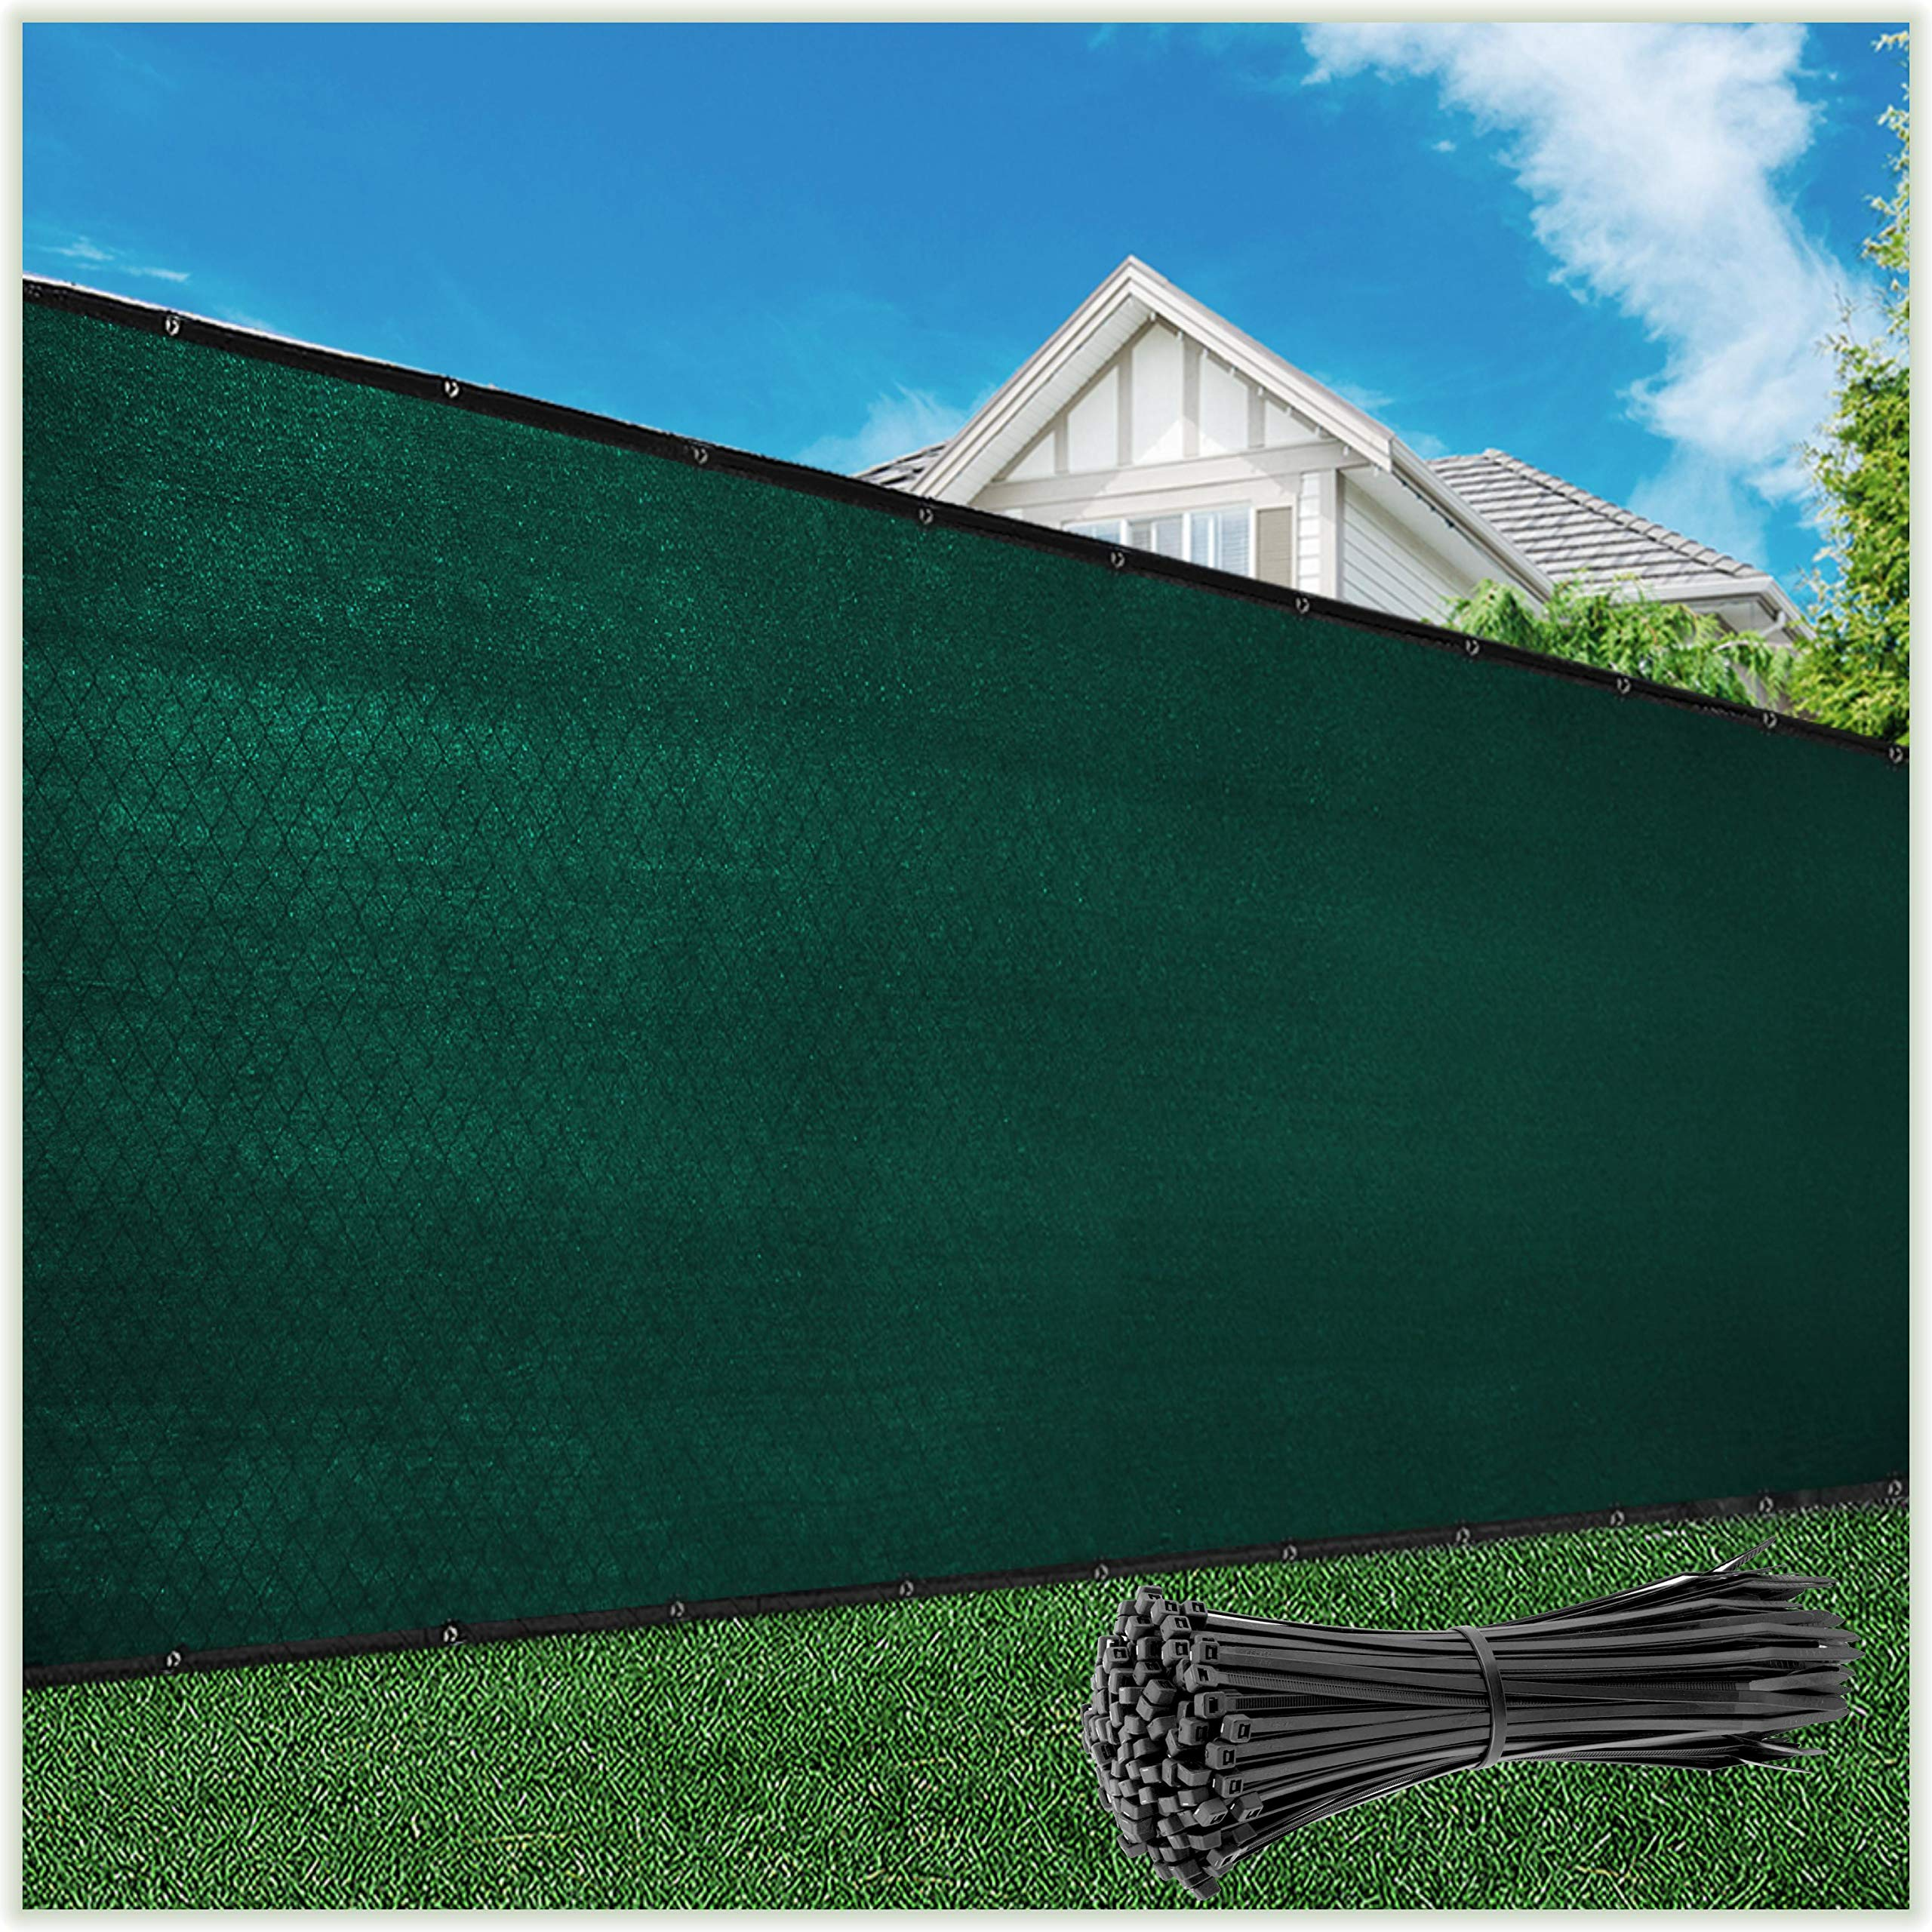 ColourTree Customized Size Fence Screen Privacy Screen Green 6' x 12' - Commercial Grade 170 GSM - Heavy Duty - 3 Years Warranty - Cable Zip Ties Included